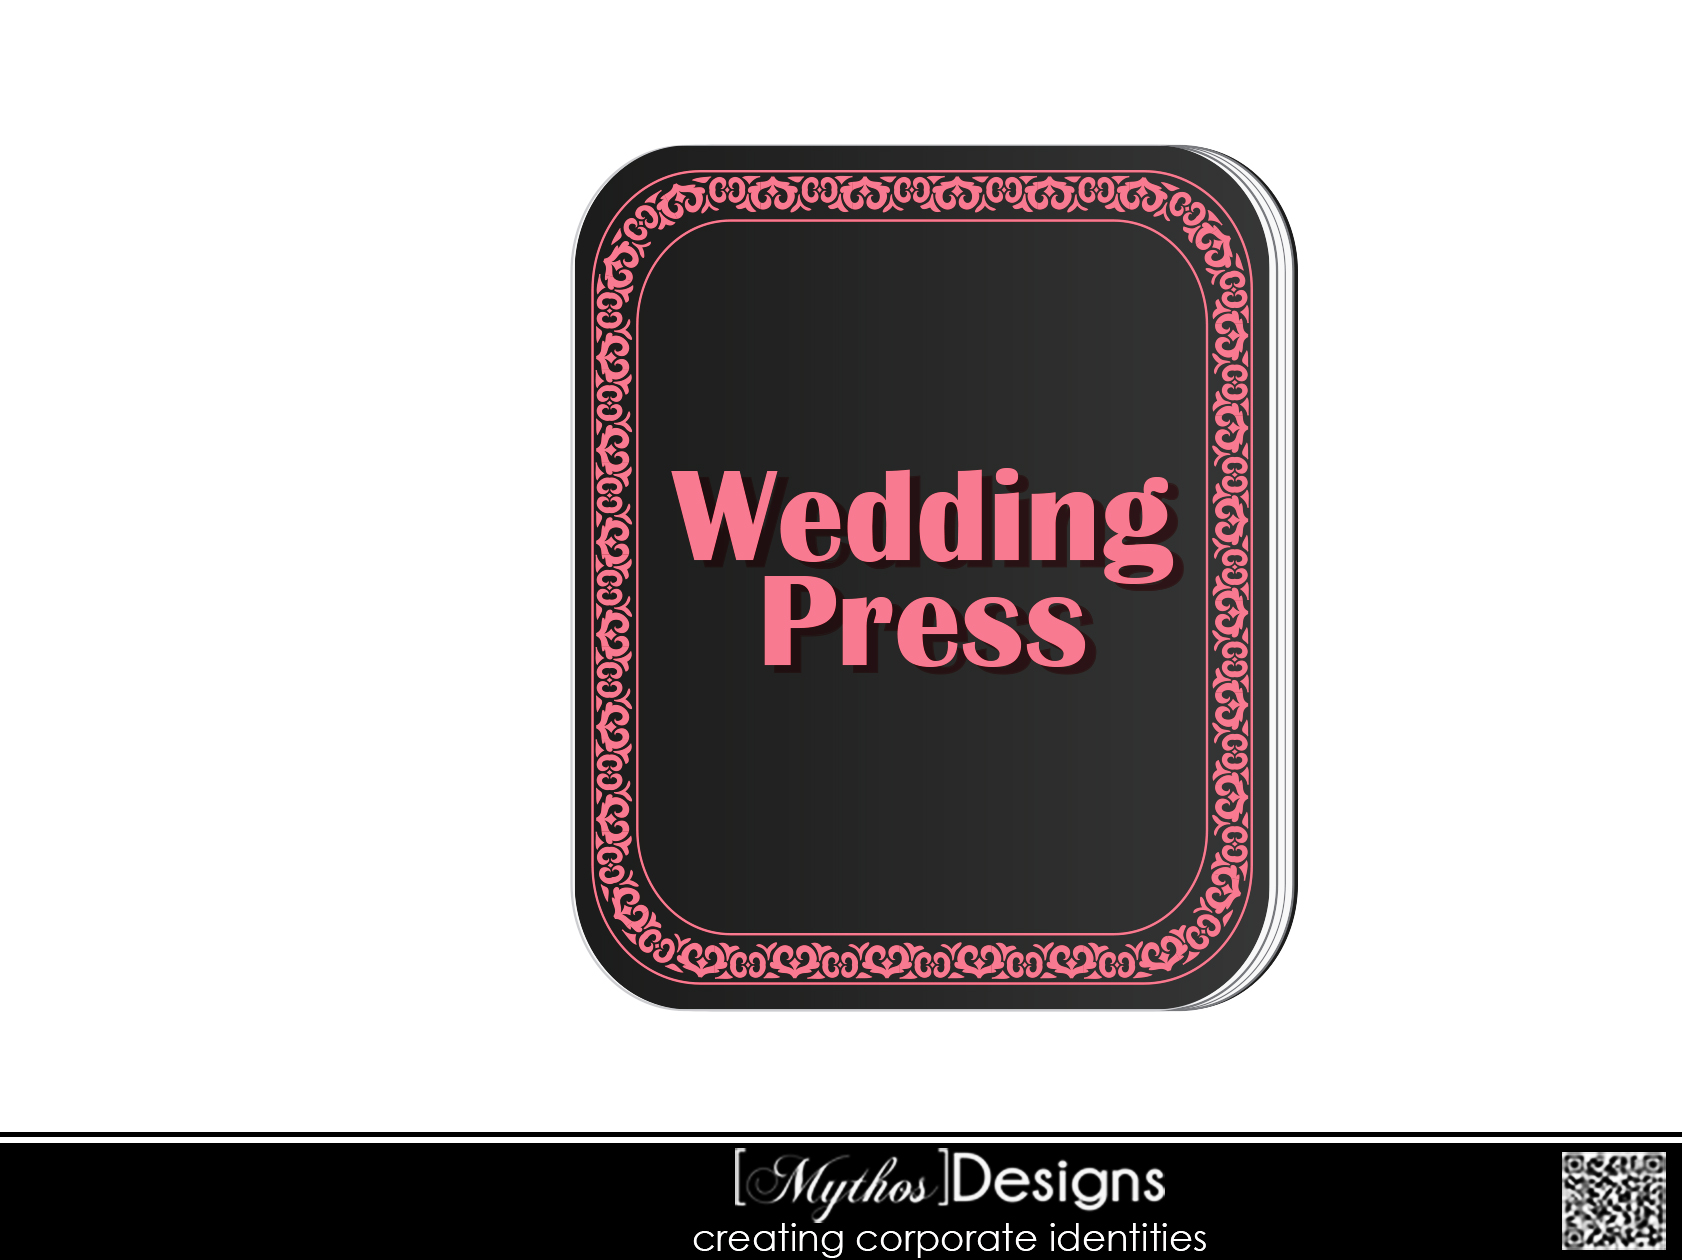 Logo Design by Mythos Designs - Entry No. 48 in the Logo Design Contest Wedding Writes Logo Design.